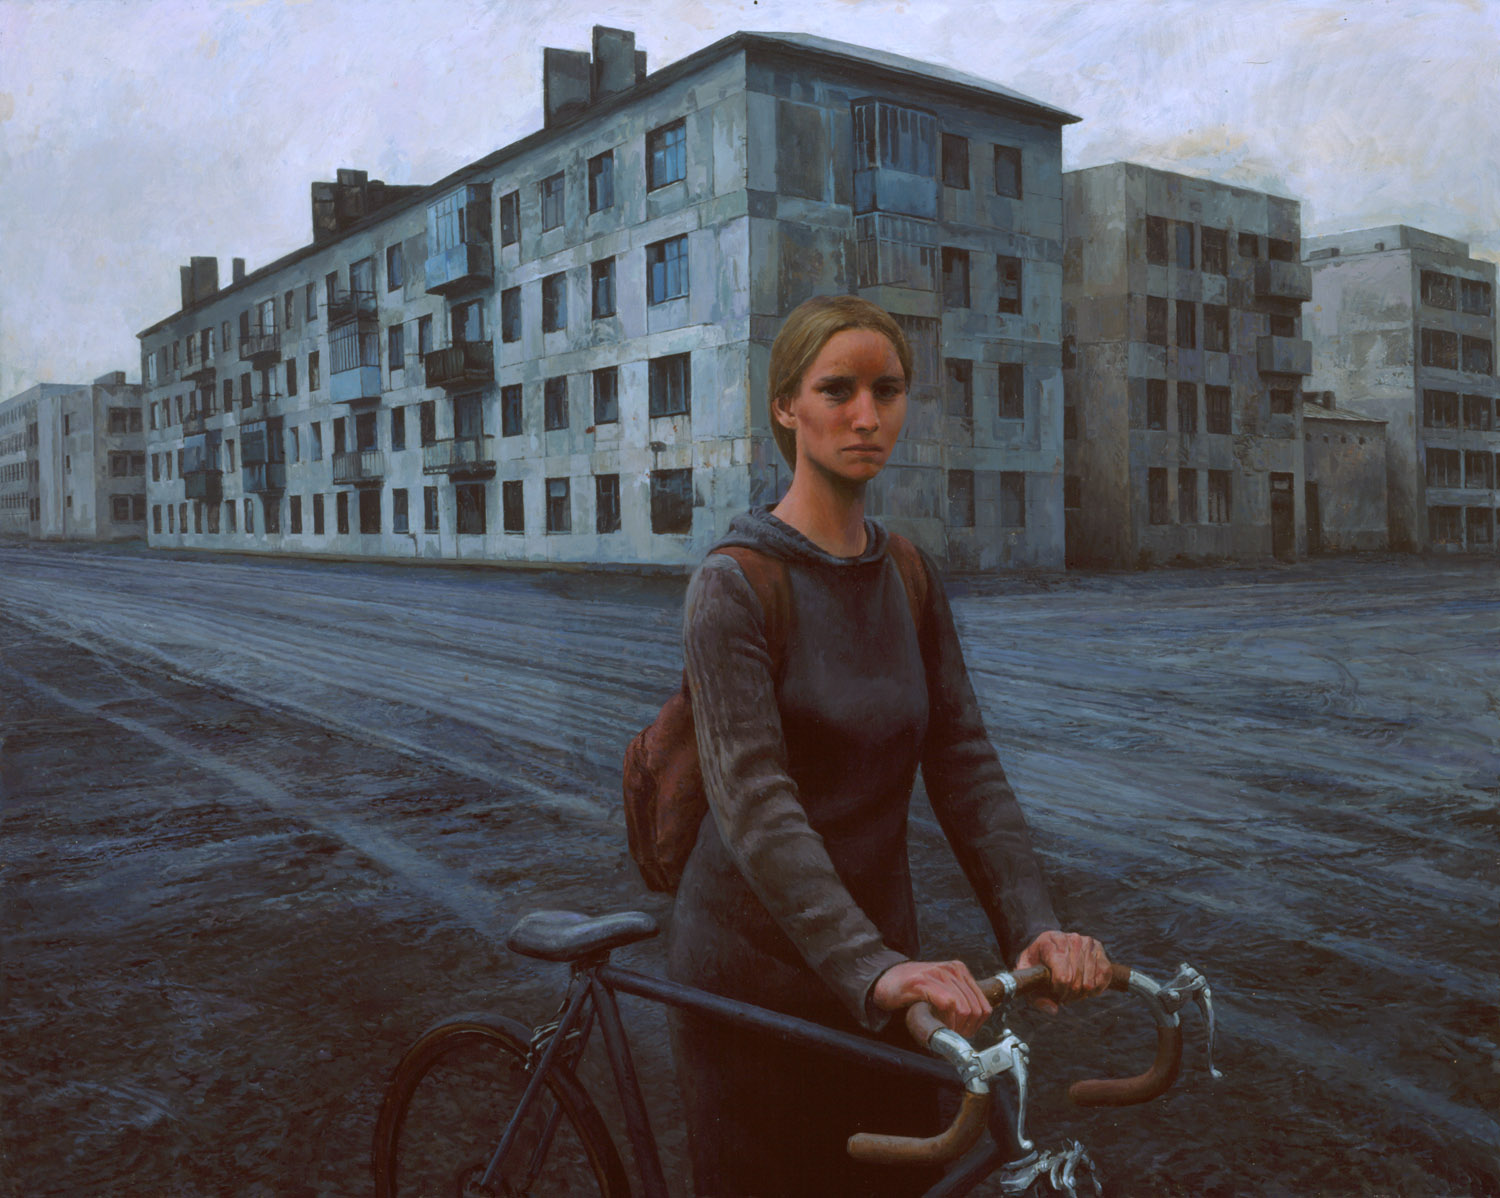 Girl With Bike , oil on canvas, 48 x 60 in, 2003